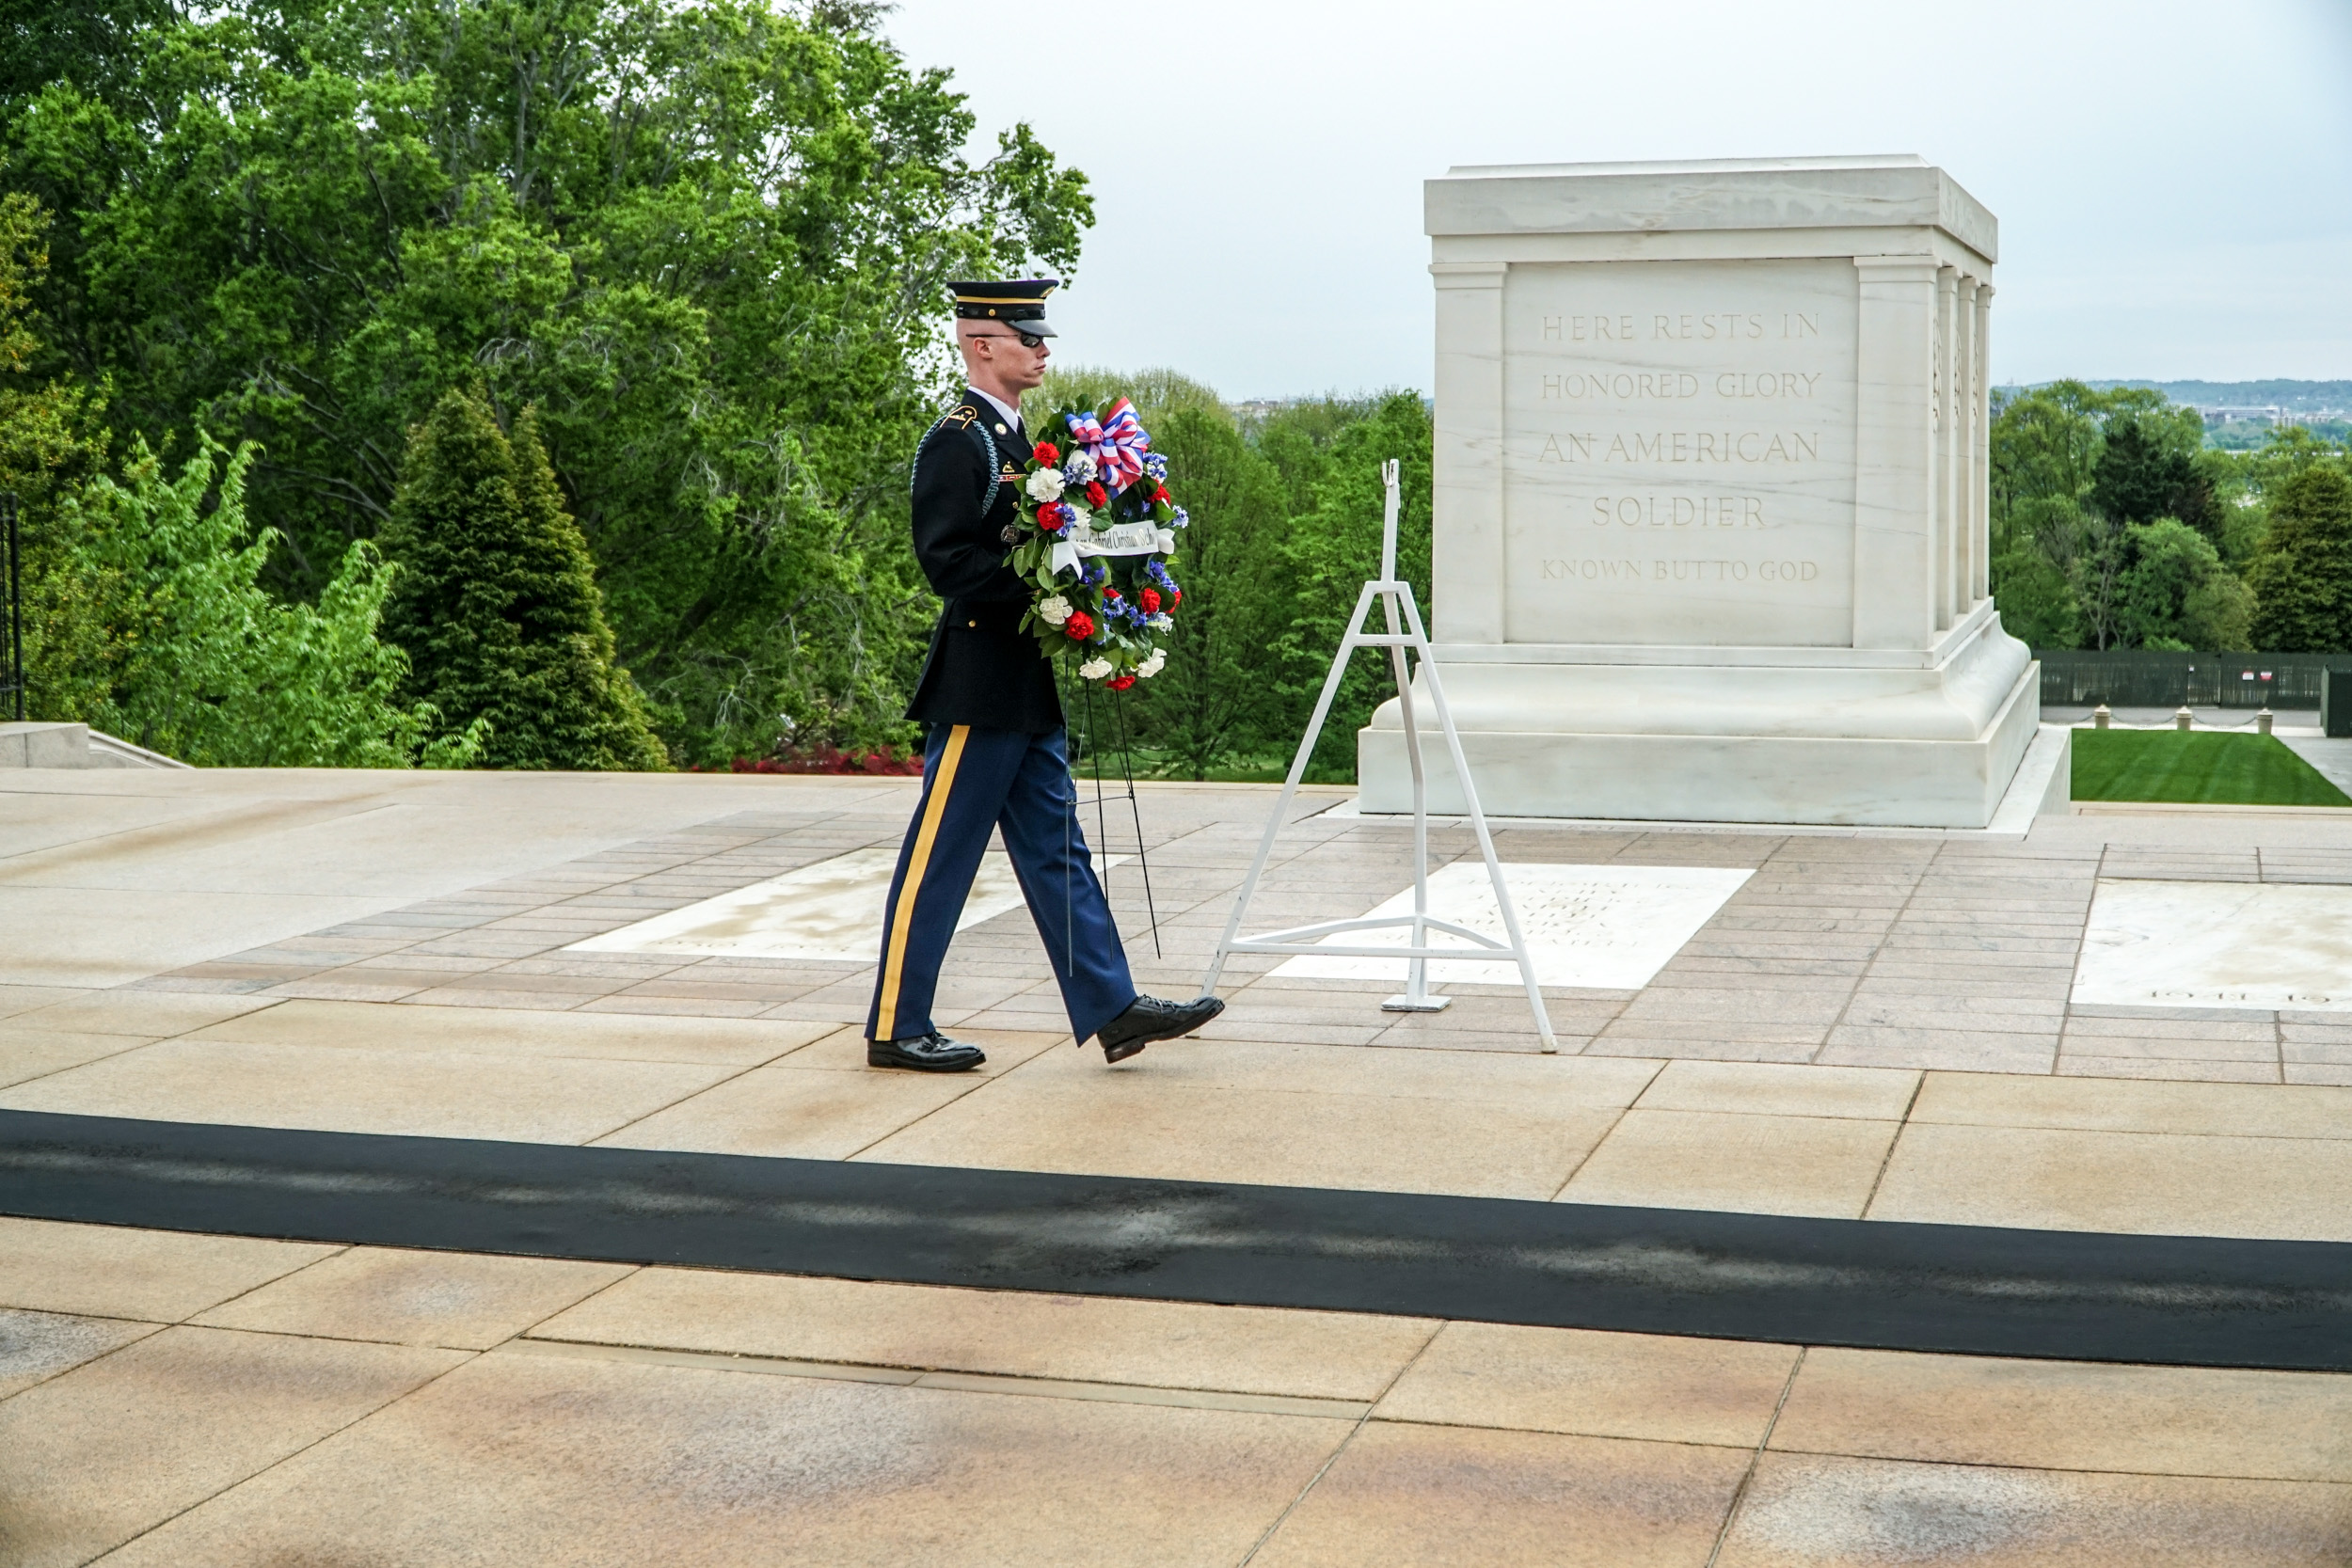 Arlington National Cemetery, Tomb of the Uknown Soldier